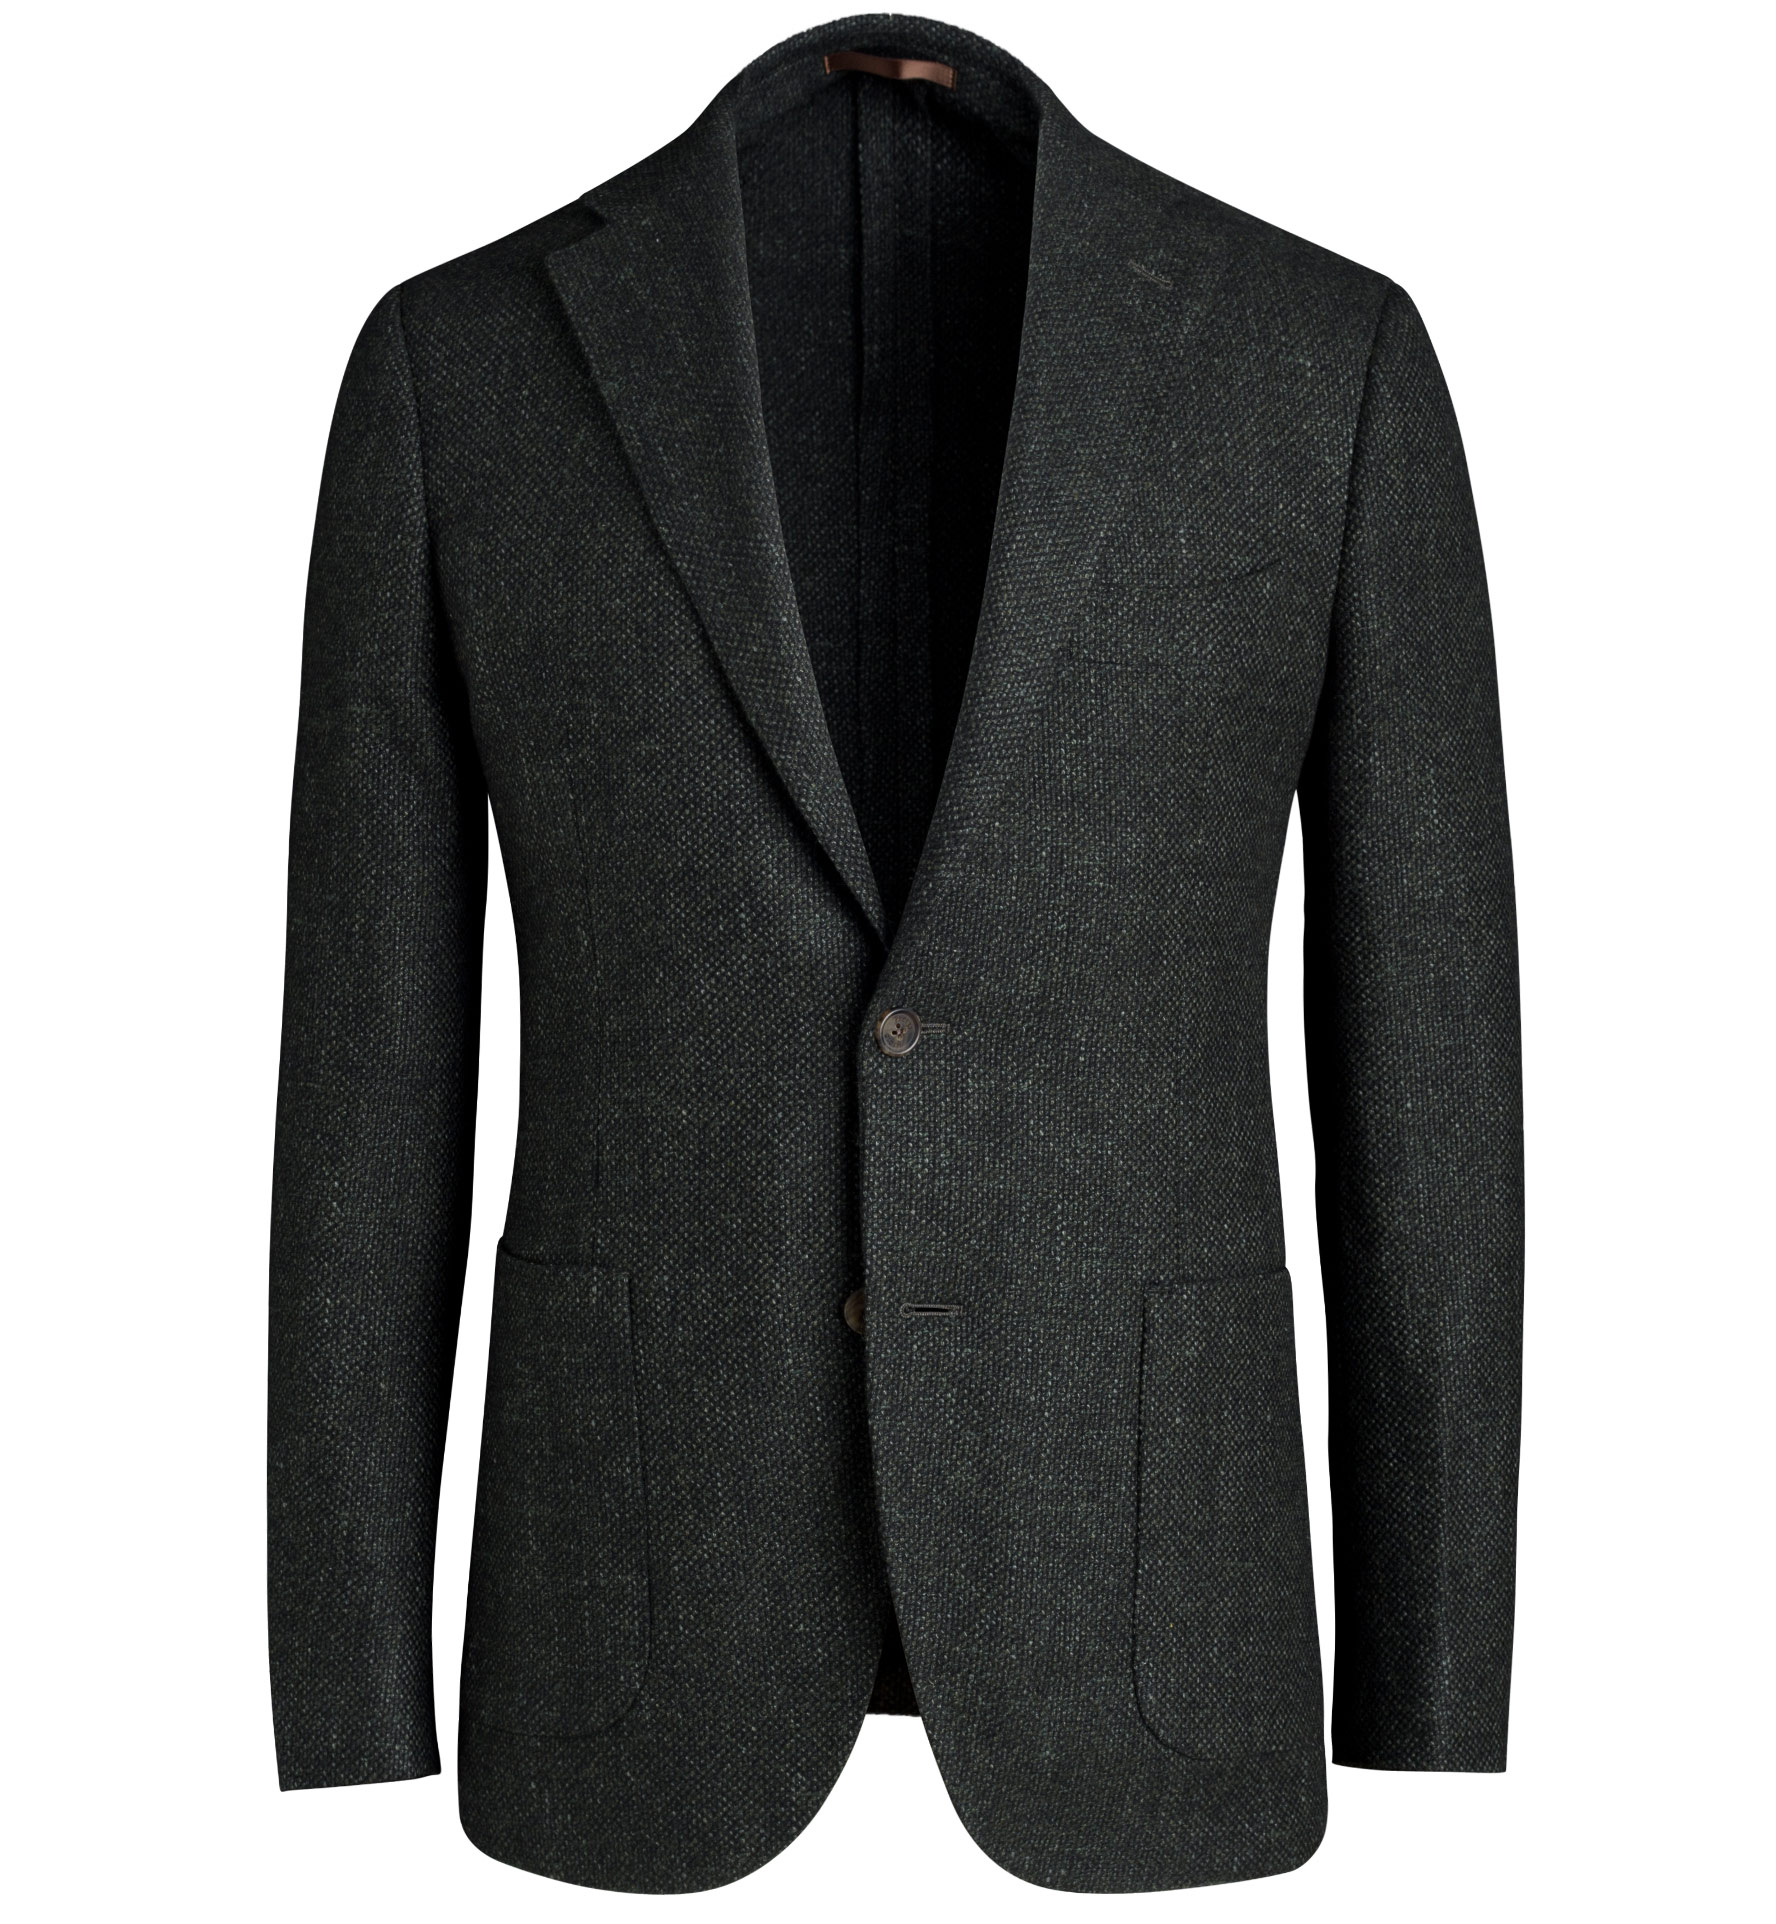 Zoom Image of Bedford Pine Wool Silk and Cashmere Jacket